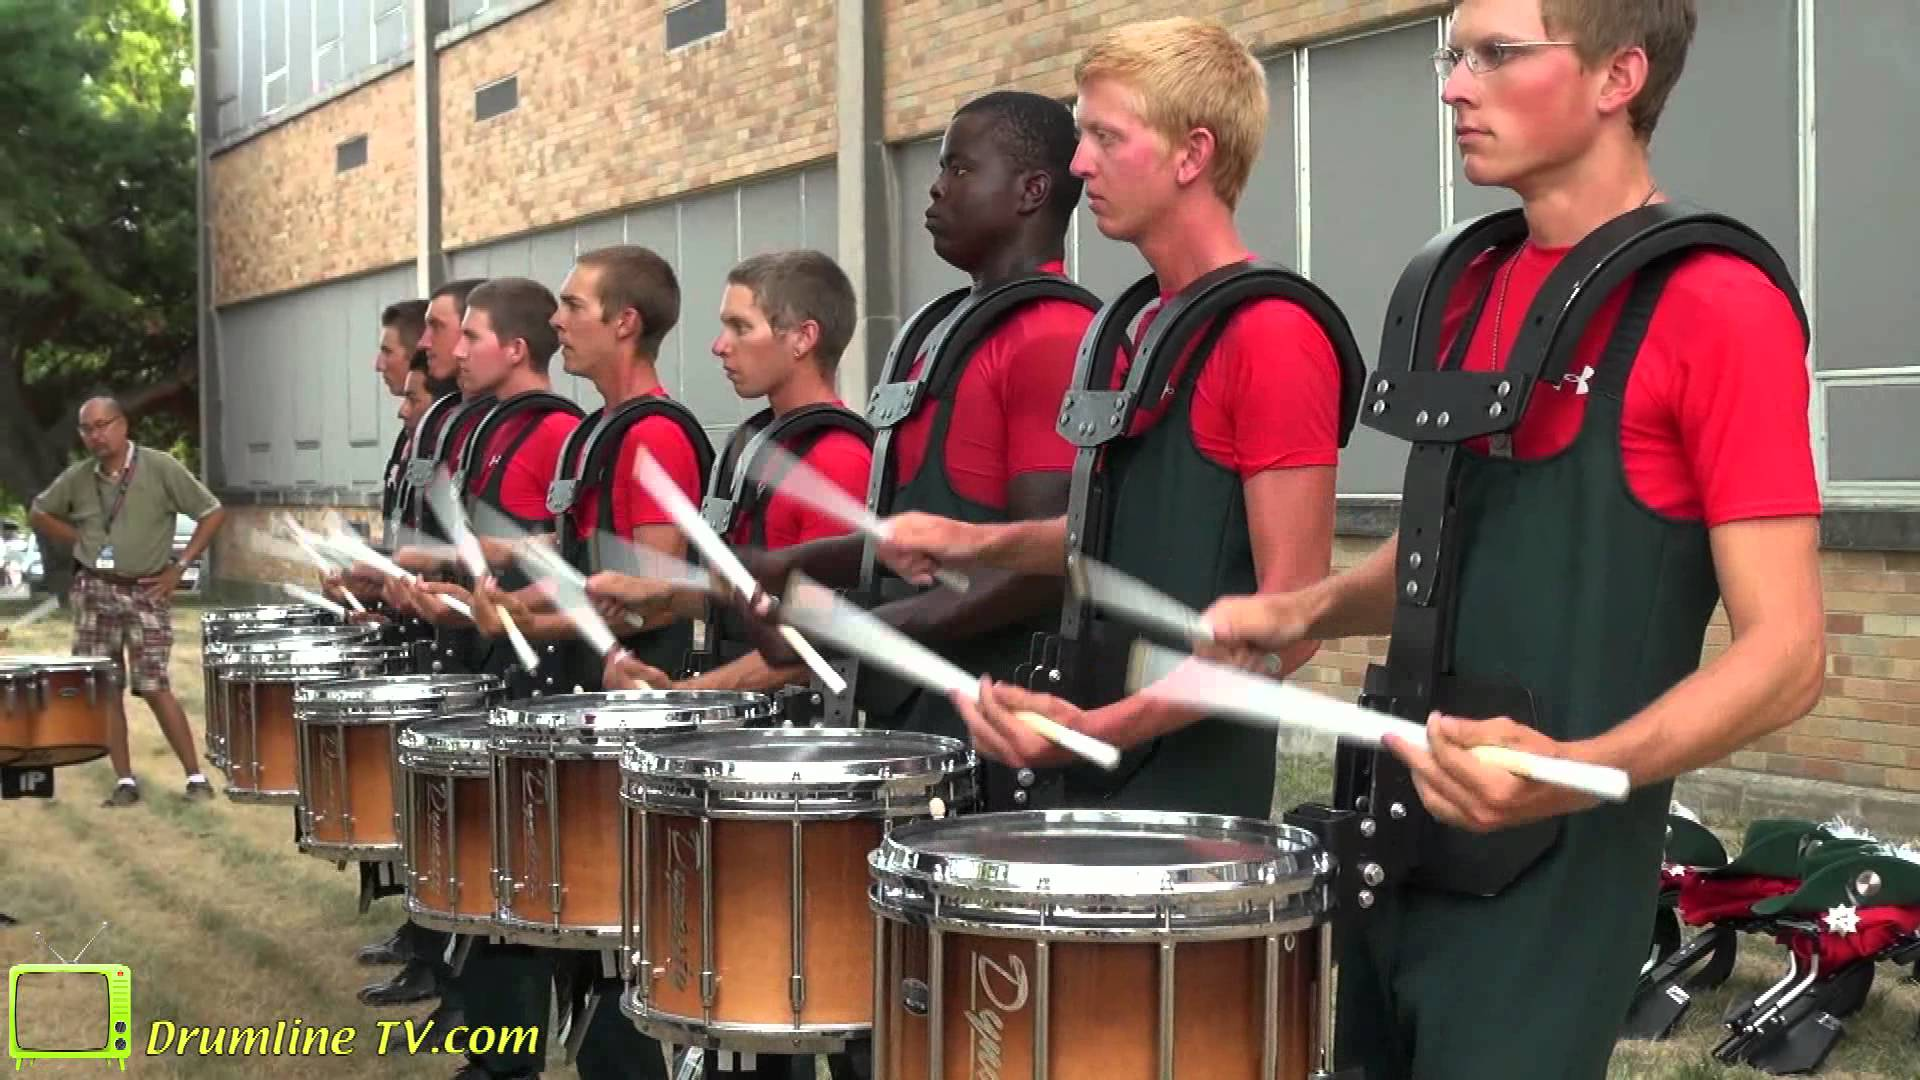 Santa Clara Vanguard 2012 Drumline – Show of Shows – Rockford, Illinois 7-15-12